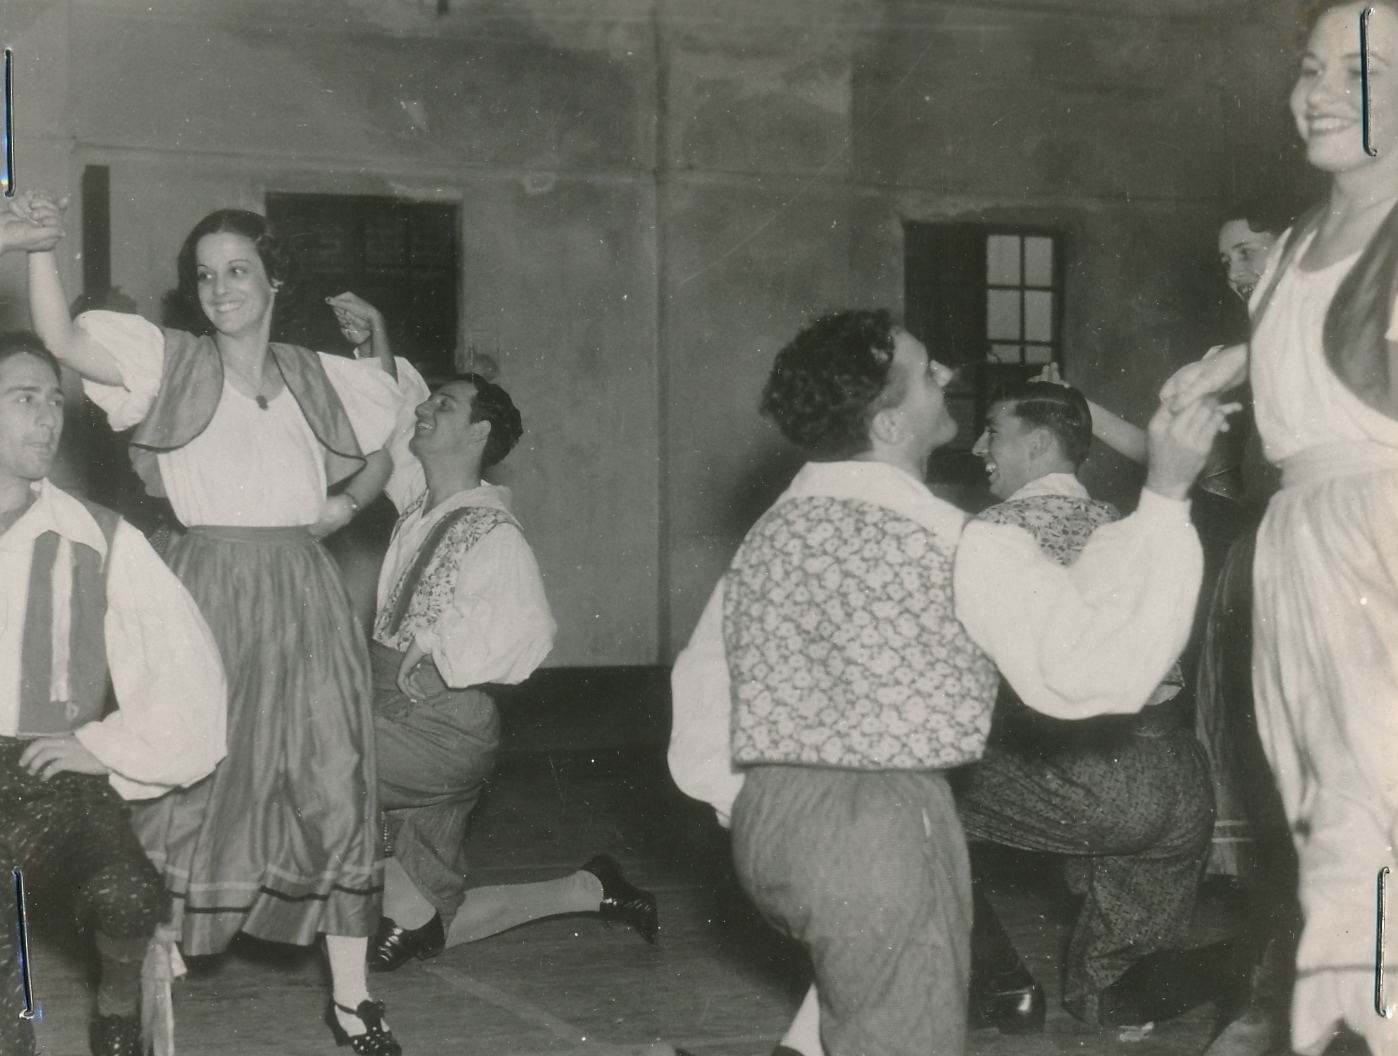 Dance can lift the spirits, as this WPA adult recreation project in Louisiana shows. Photo courtesy of the National Archives (ca. 1935-1943).